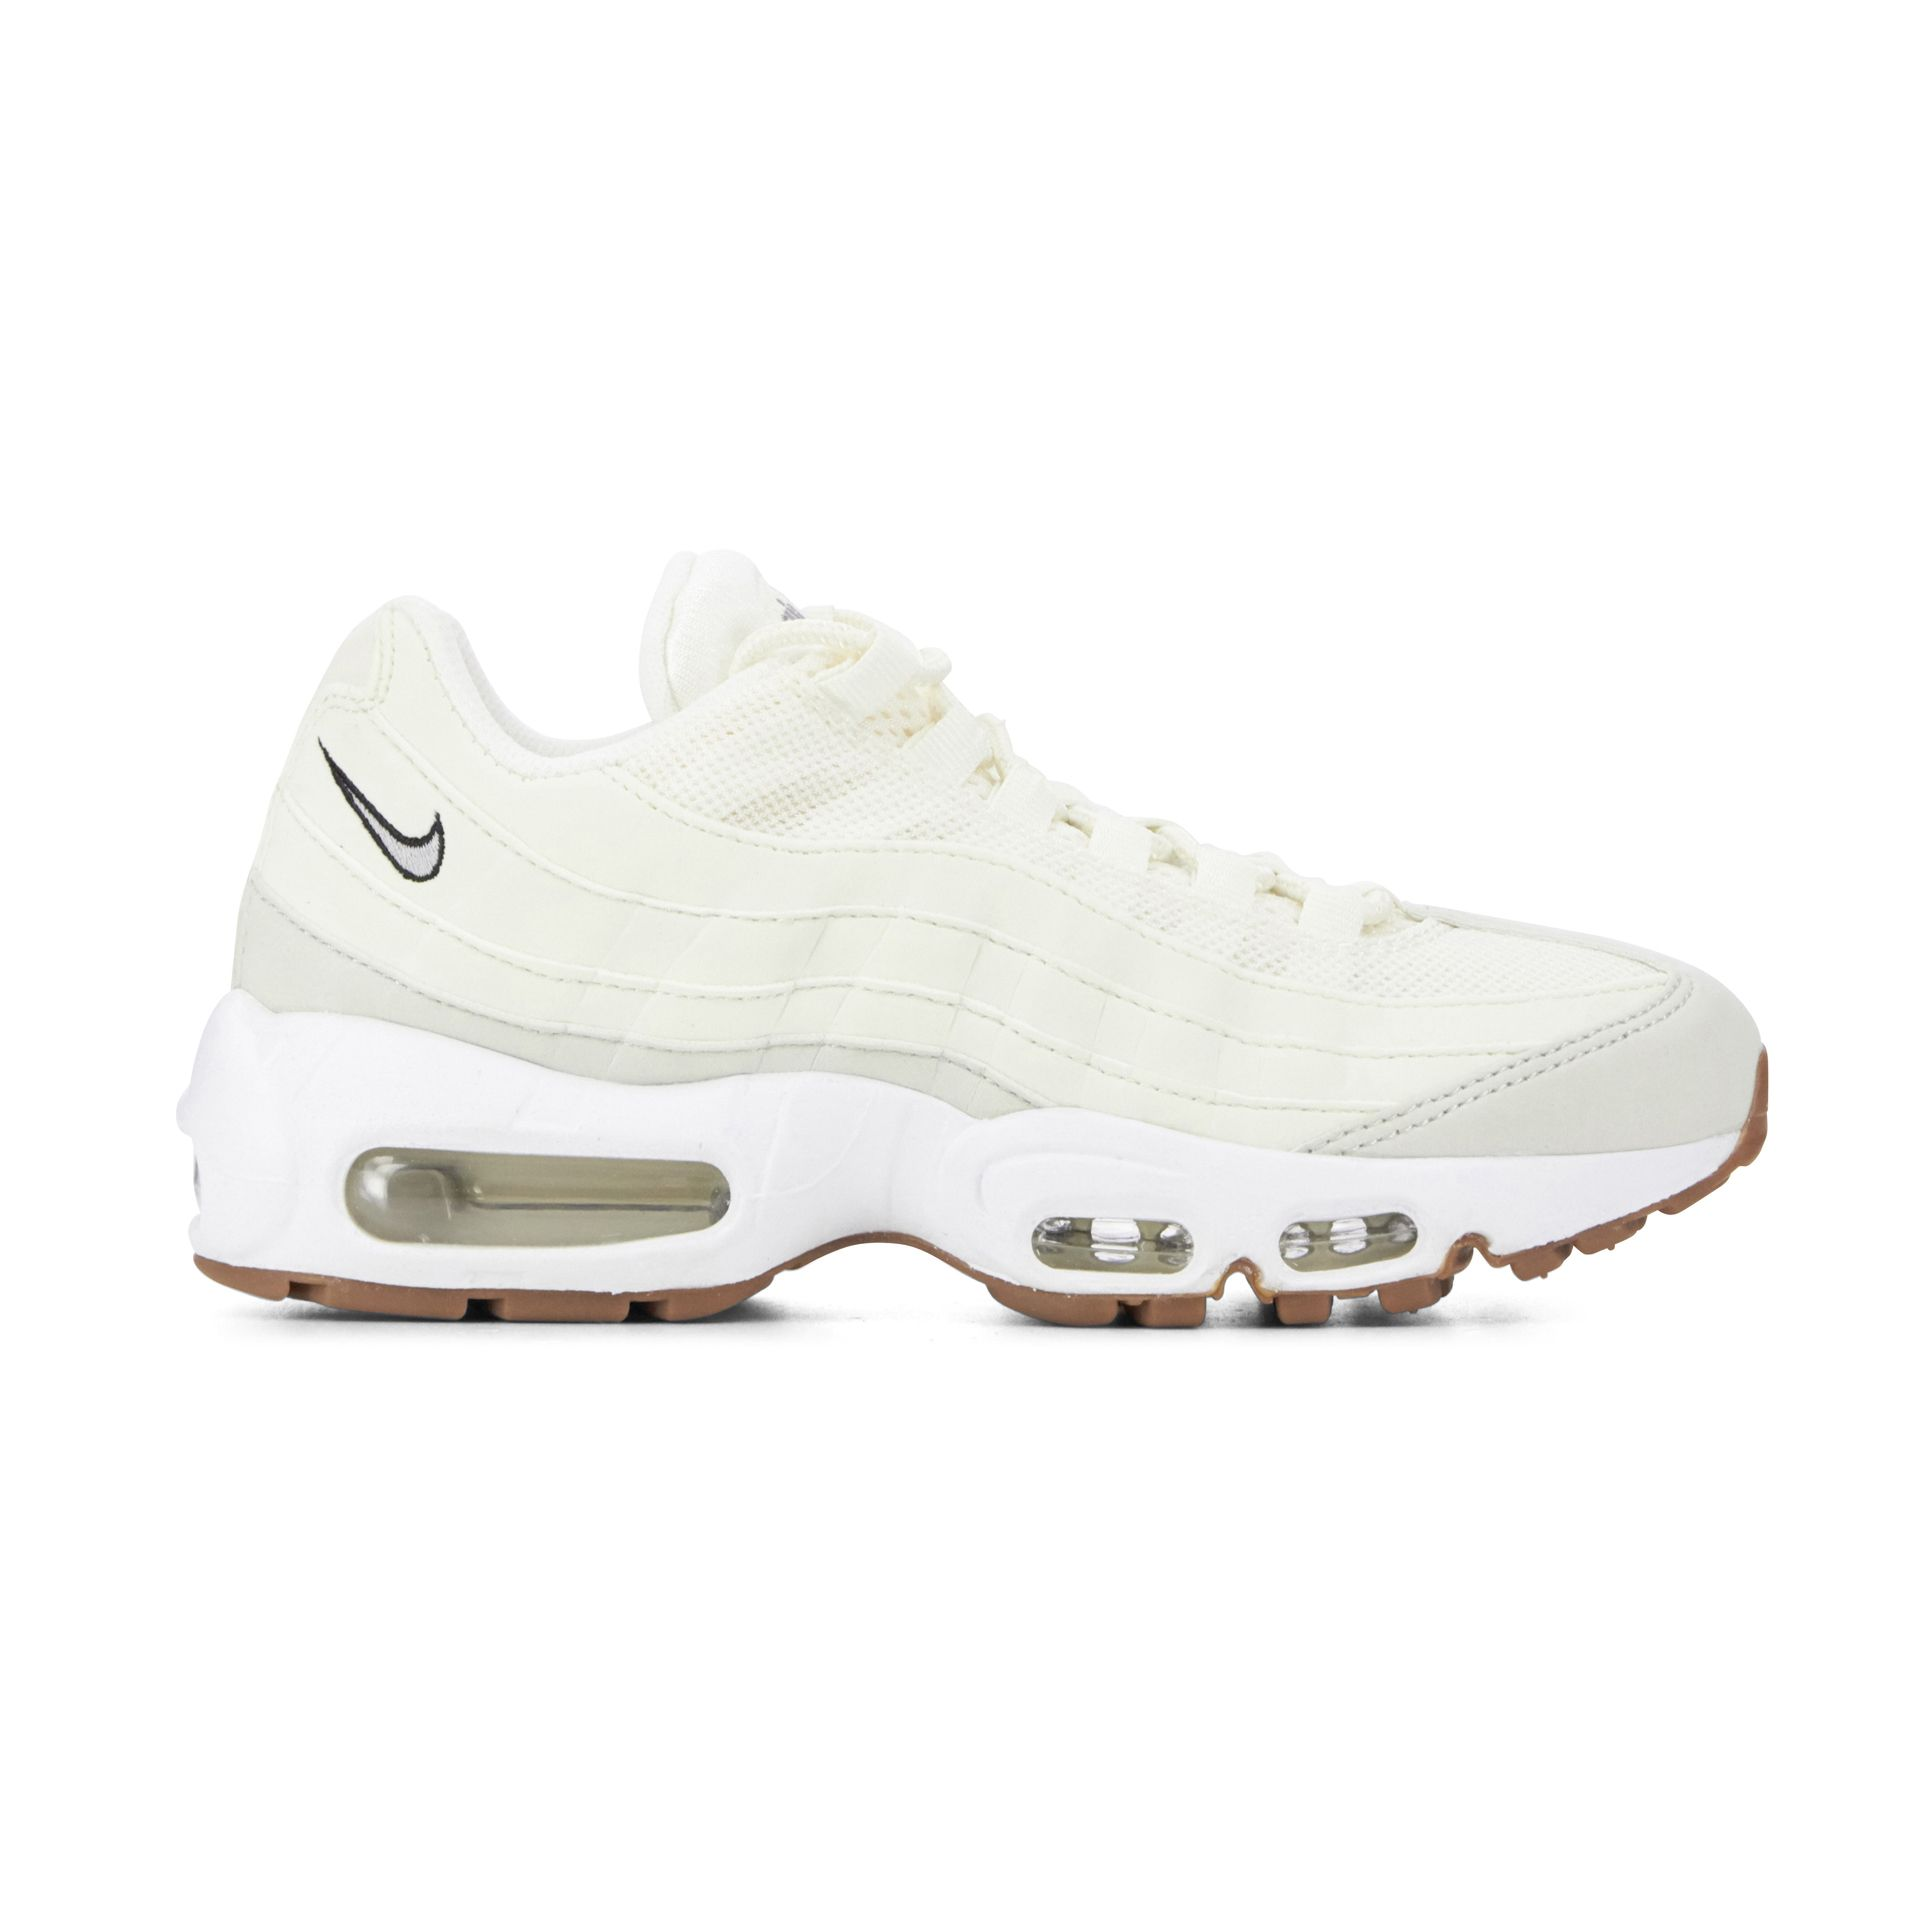 AIR+MAX+95 | Sneakers, Shoes, Air max sneakers